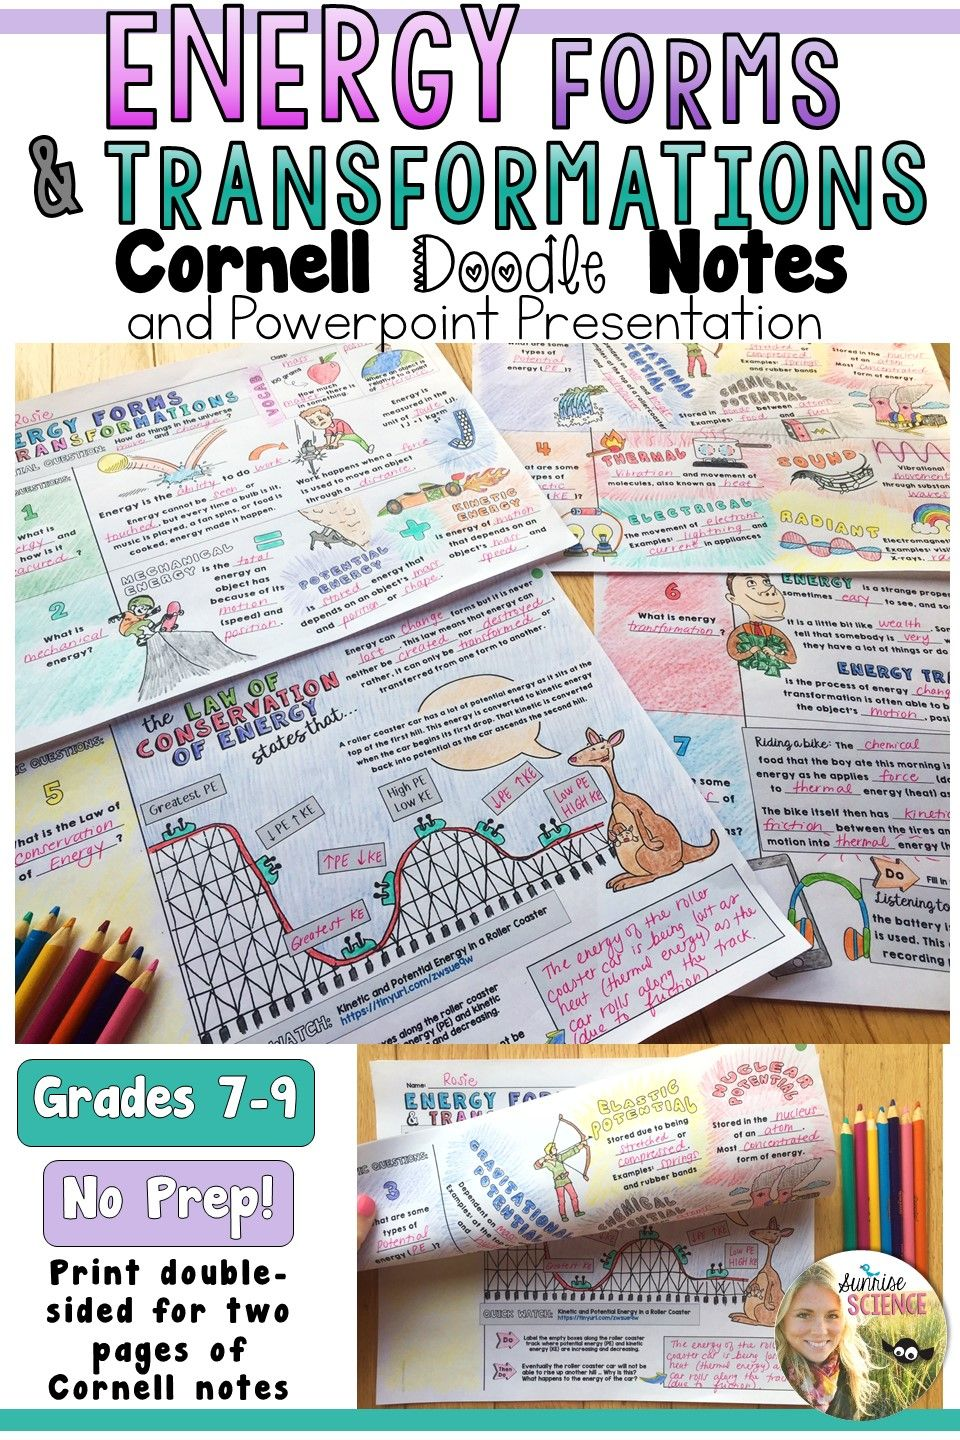 Energy Forms And Transformations Cornell Doodle Notes Energy Forms Doodle Notes Science Teaching Resources